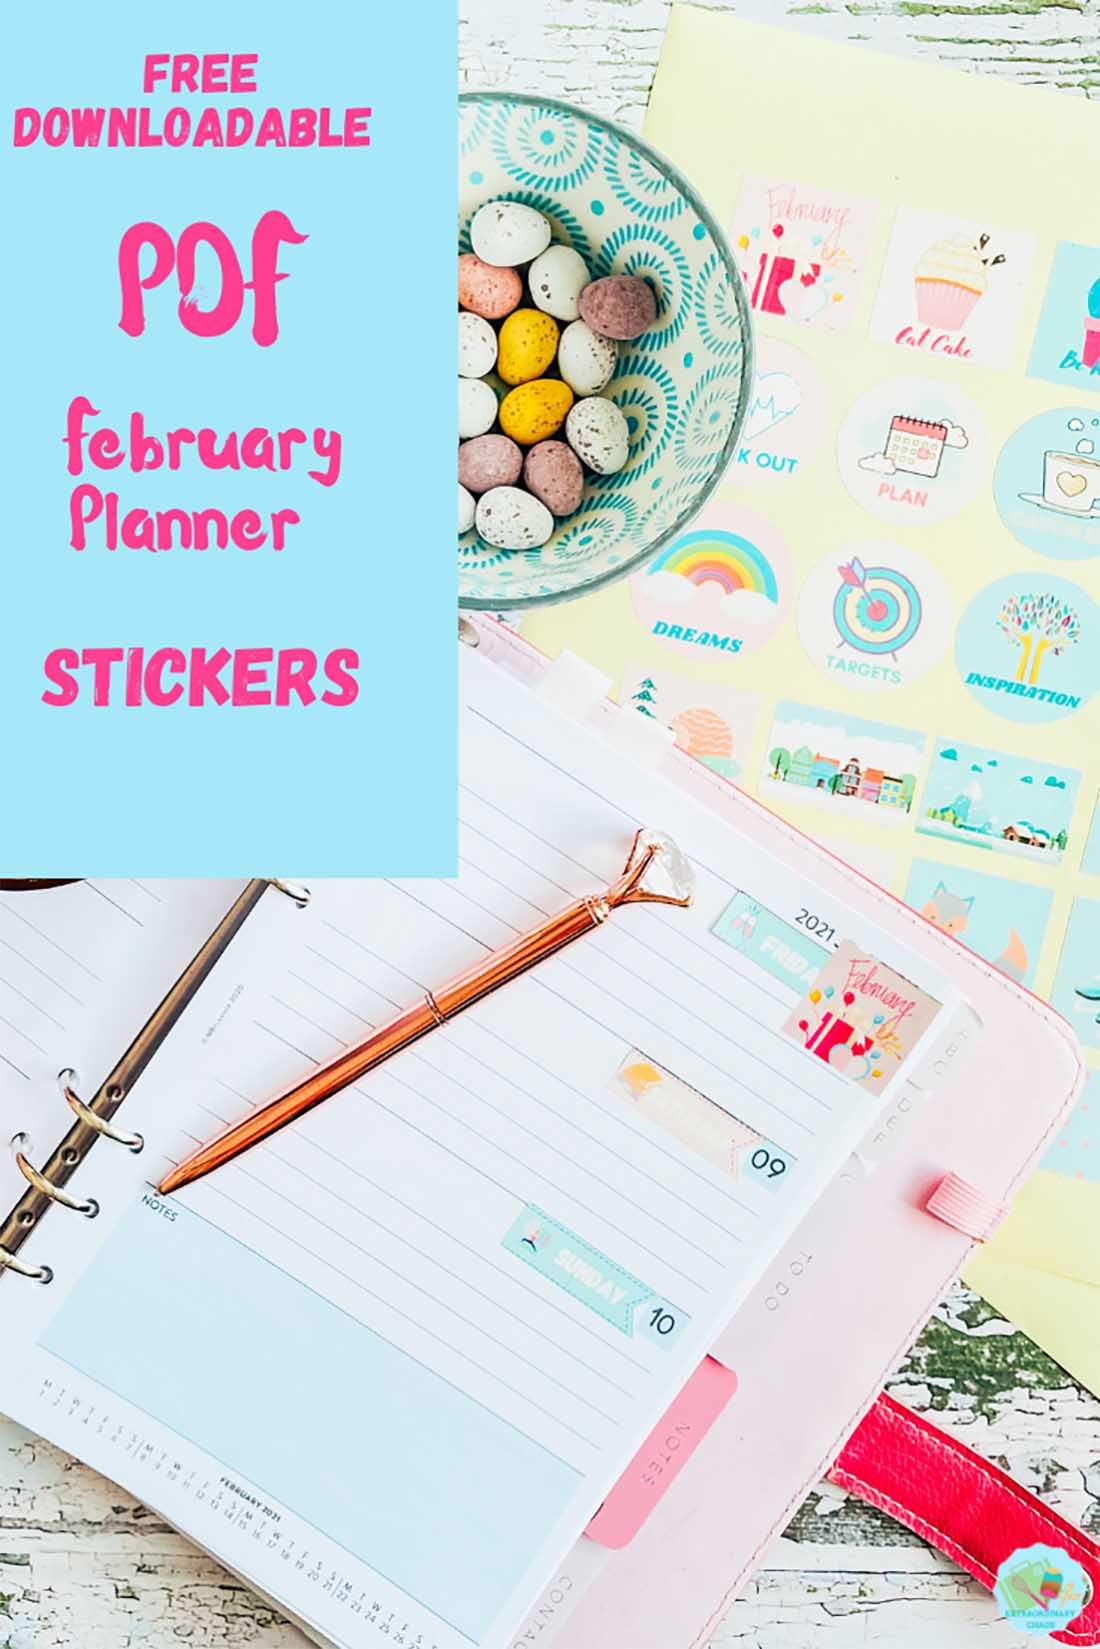 Free Downloadable PDF and PNG planner stickers for February